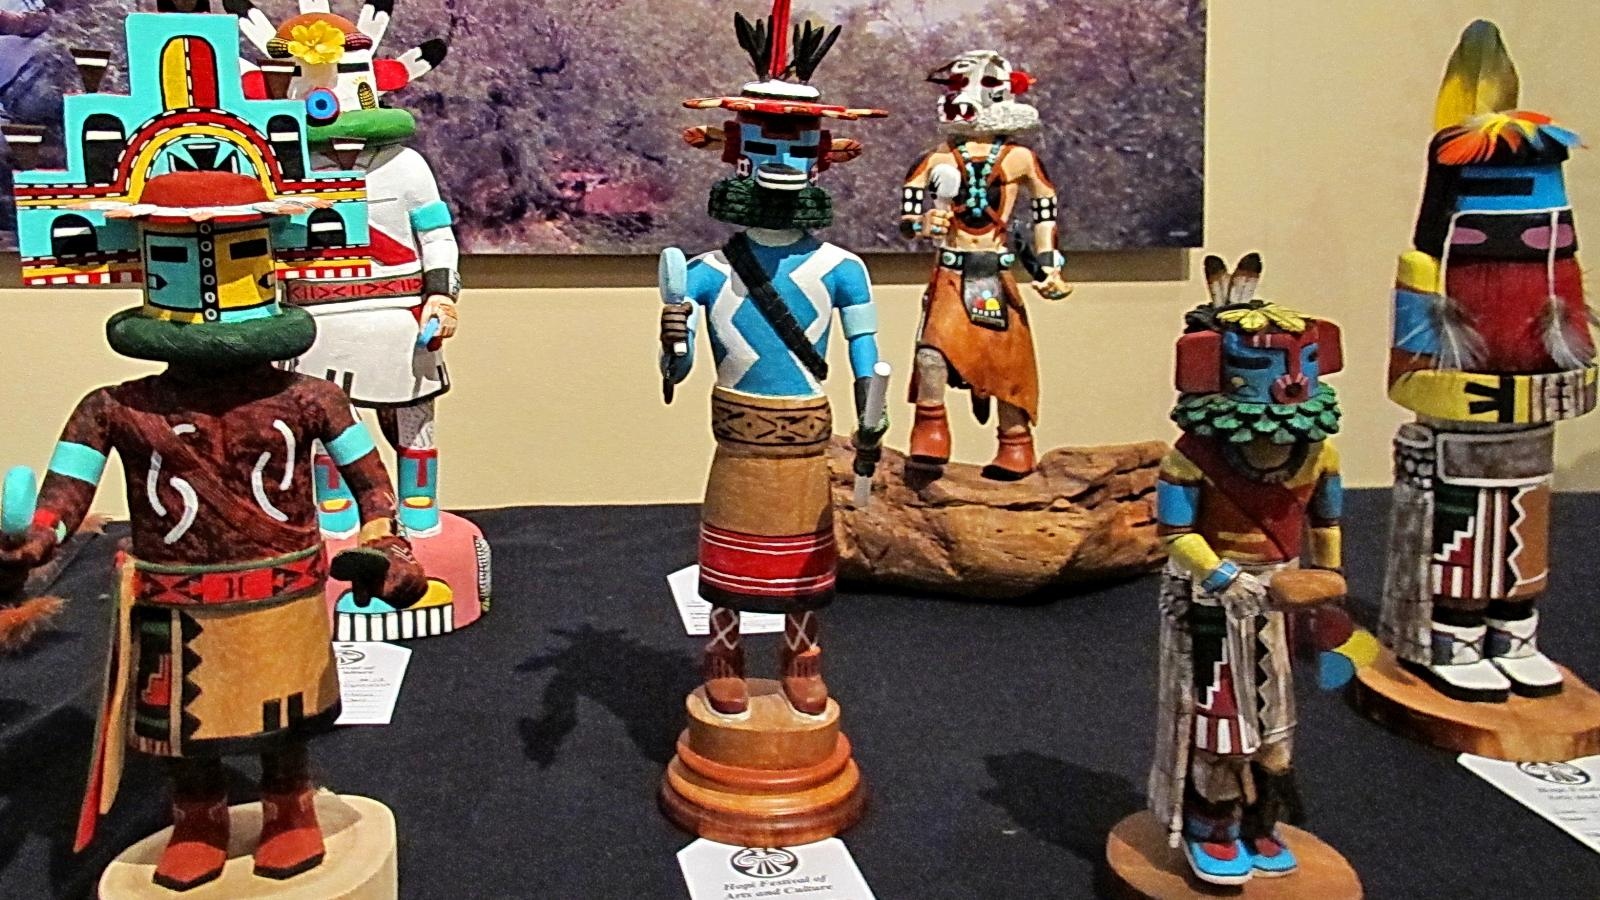 A display of colorful carved katsina dolls made by Hopi artists